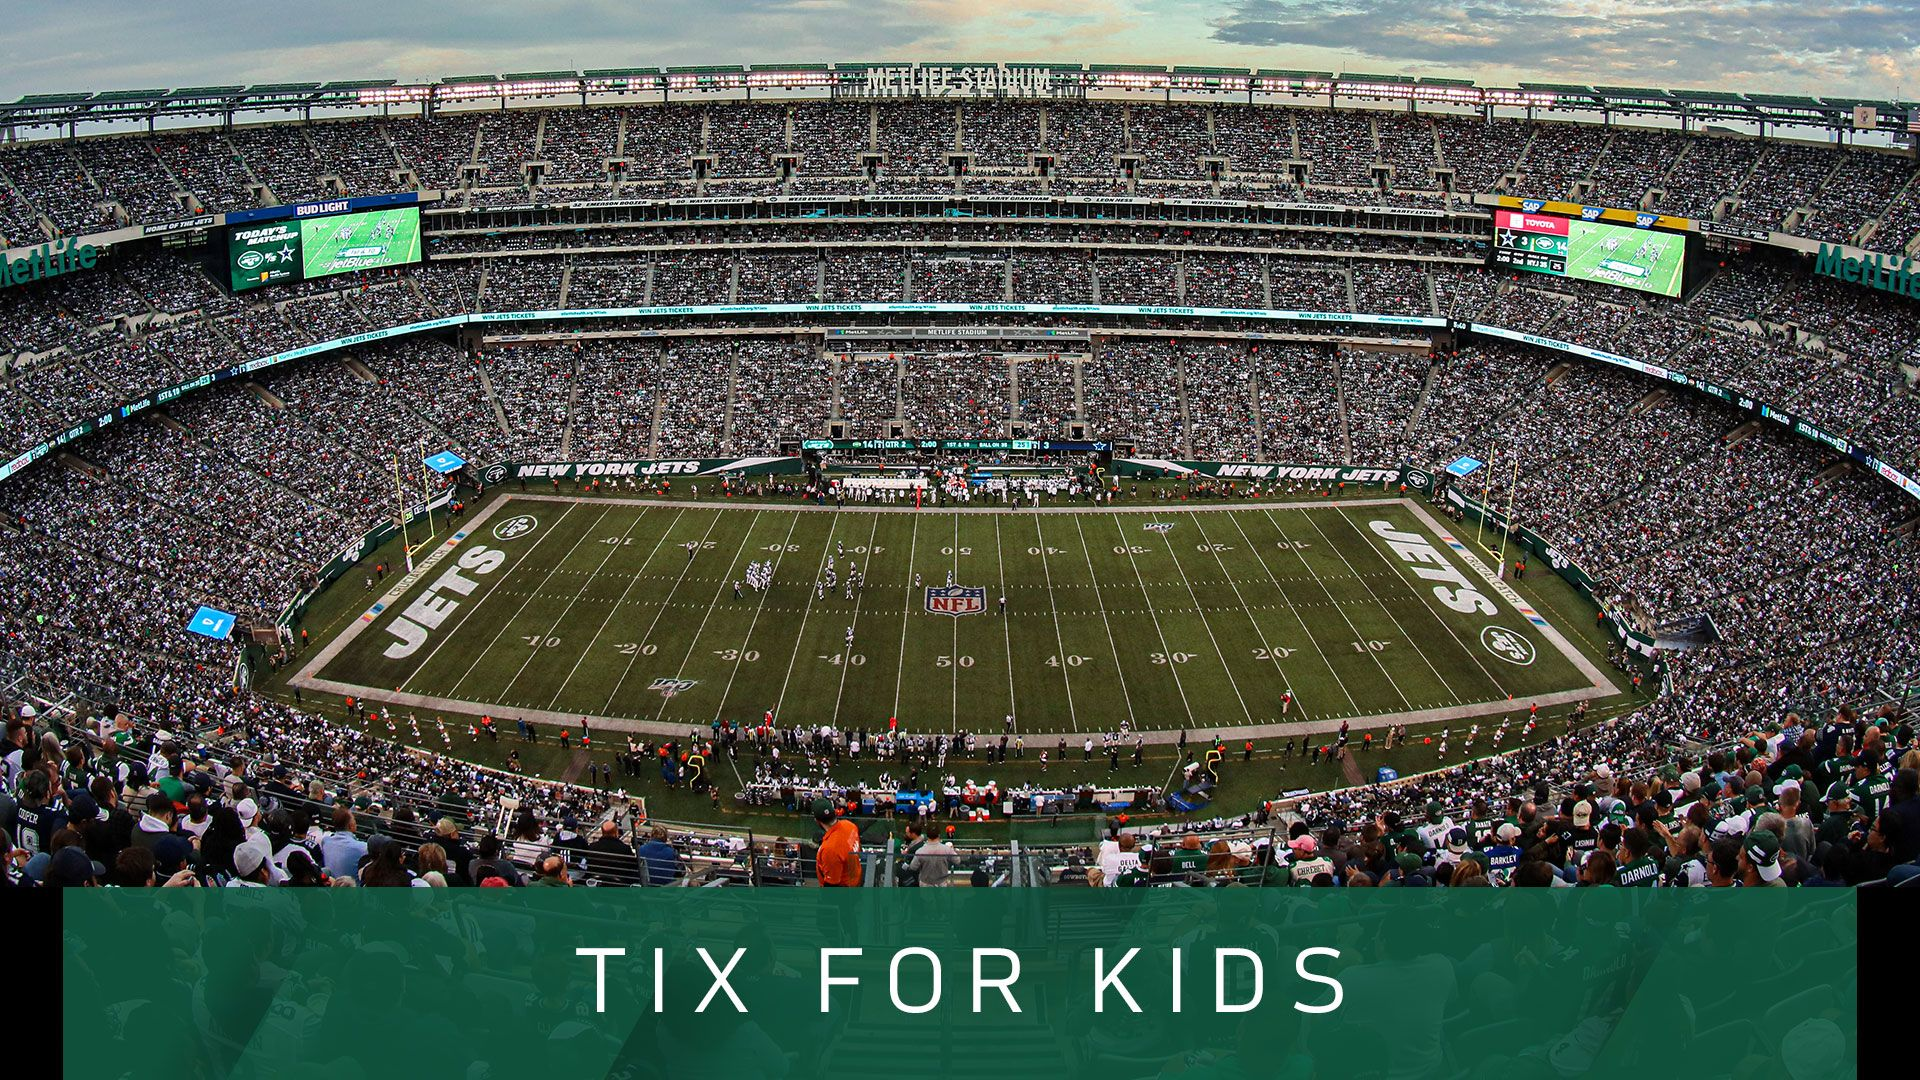 TICKETS-FOR-KIDS